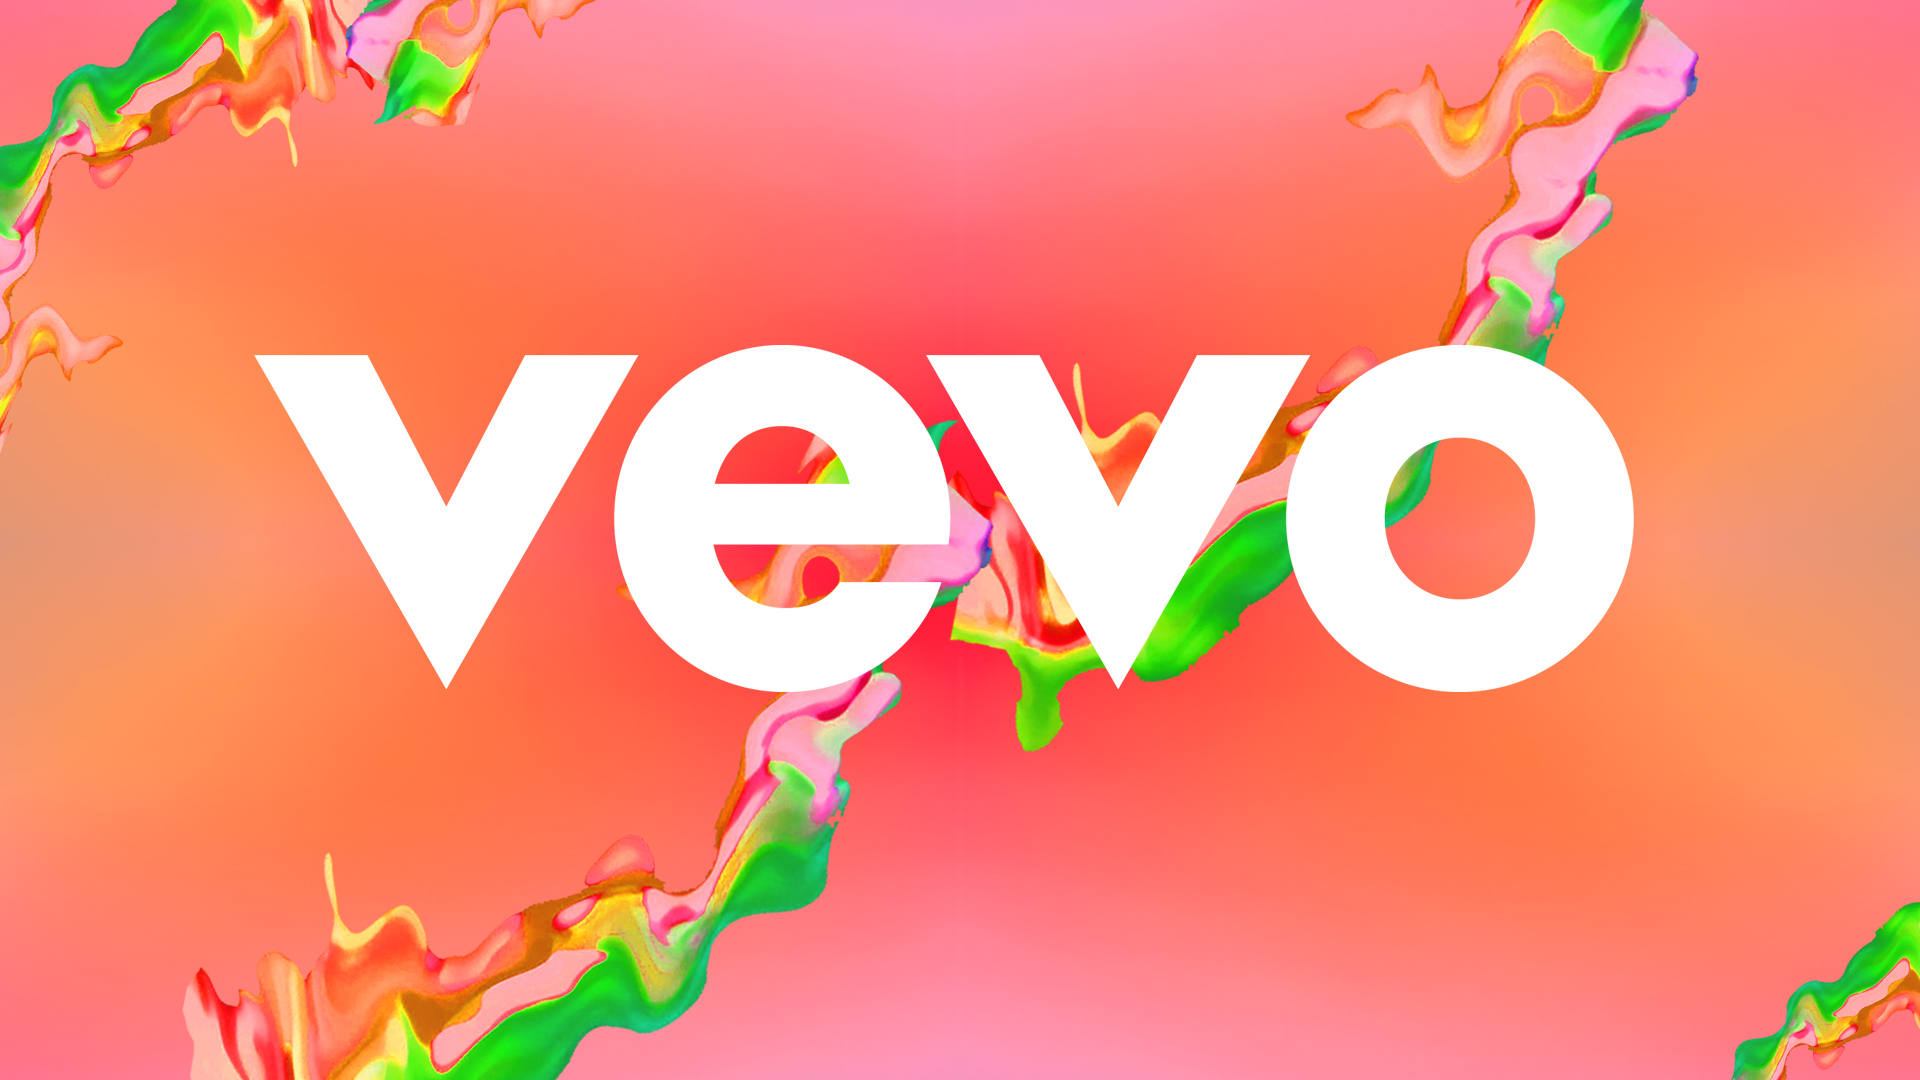 Vevo-Stickers-3.jpg